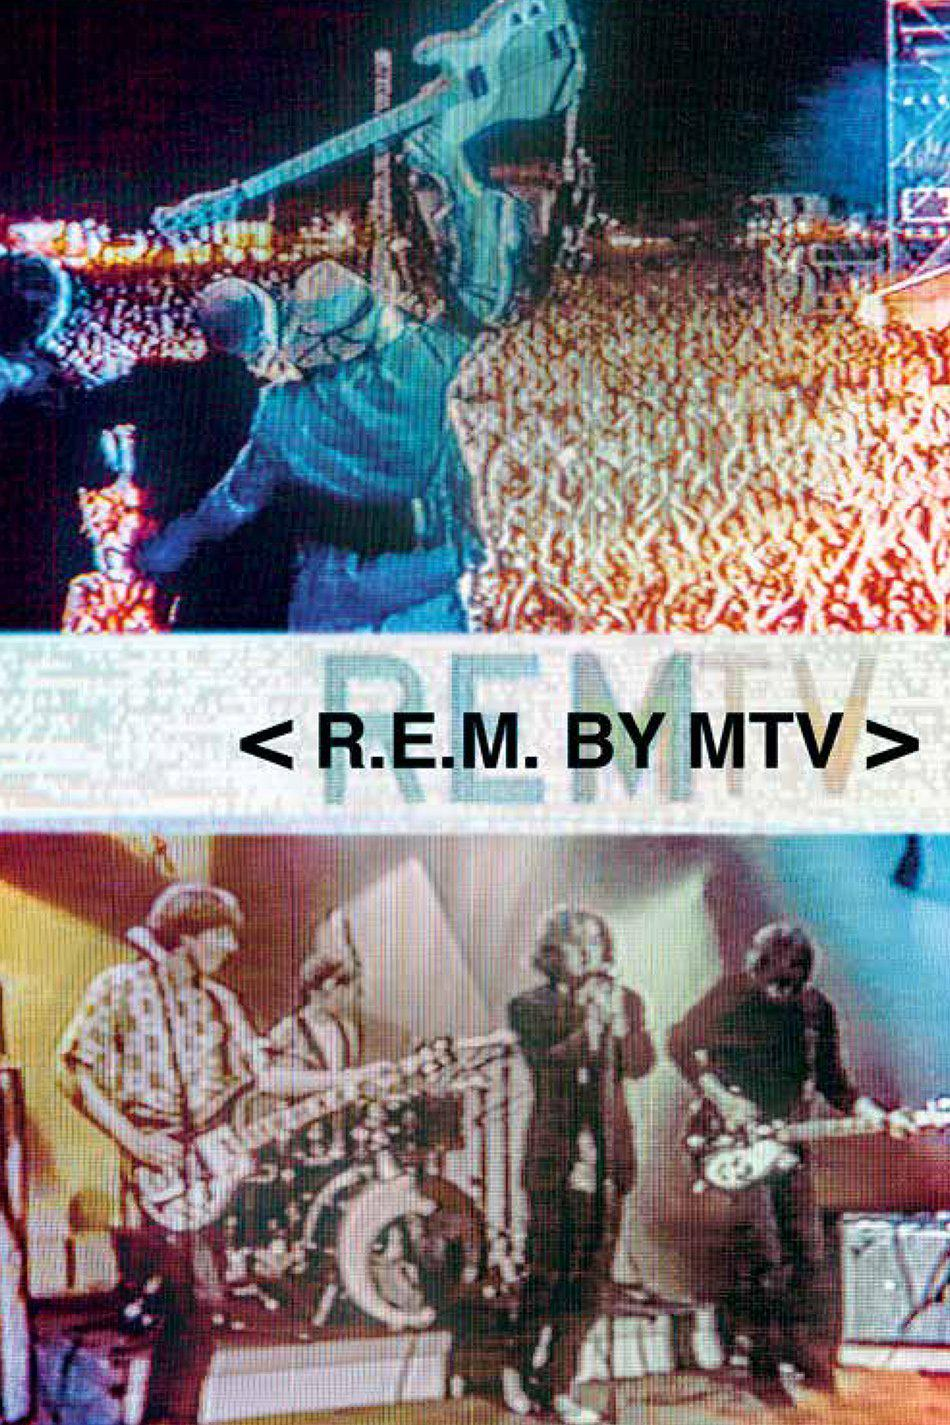 R.E.M. by MTV 2014